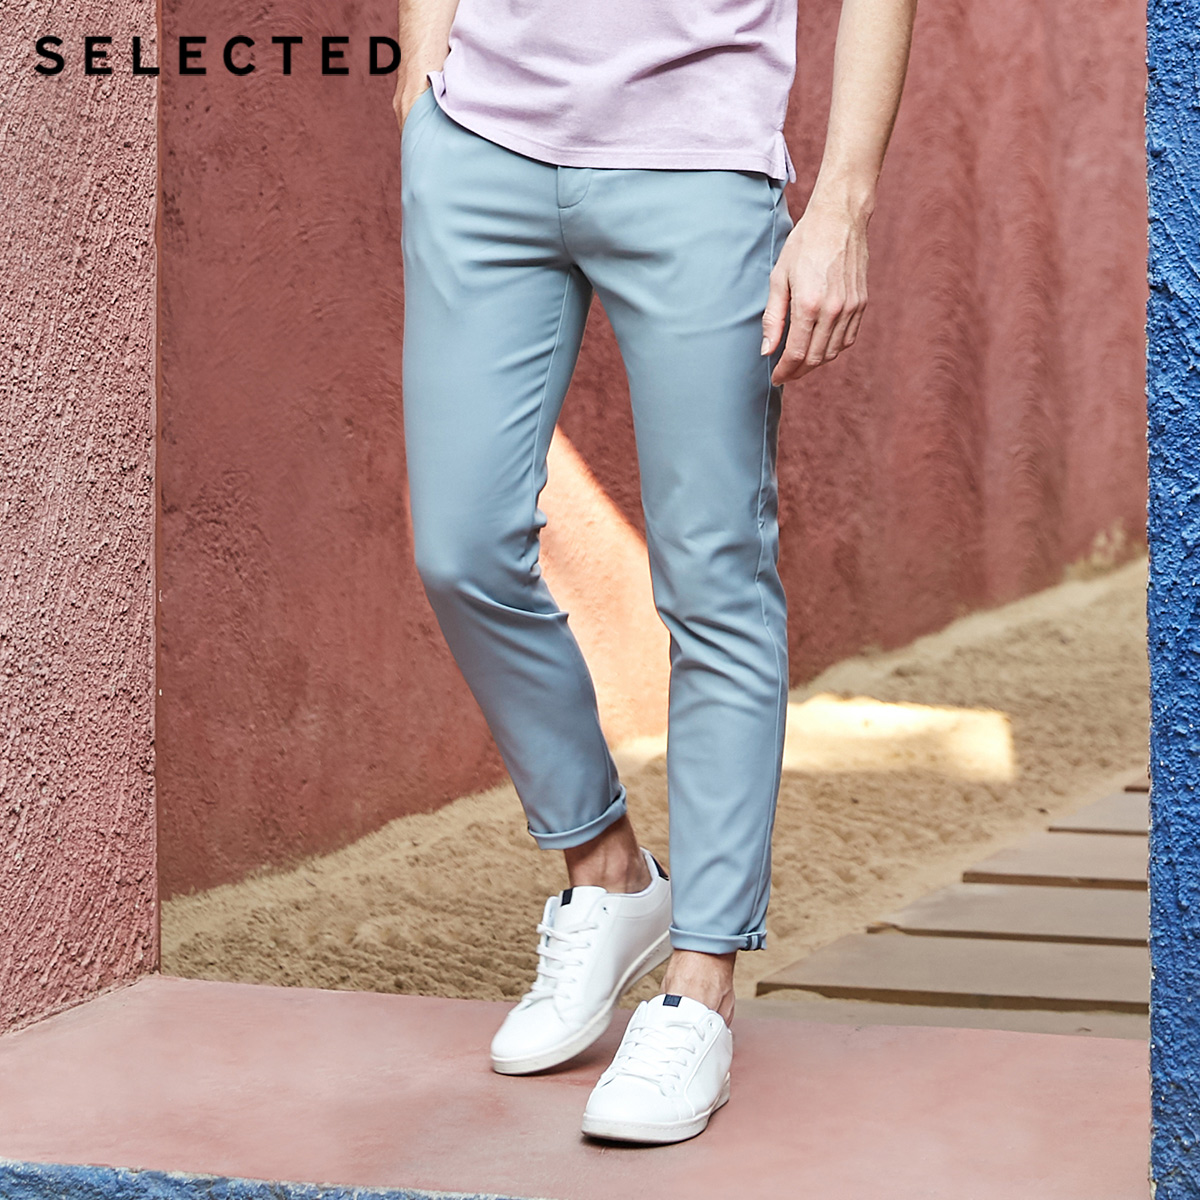 SELECTED Men's Spring Slight Stretch Casual Cotton Pants S|419114513